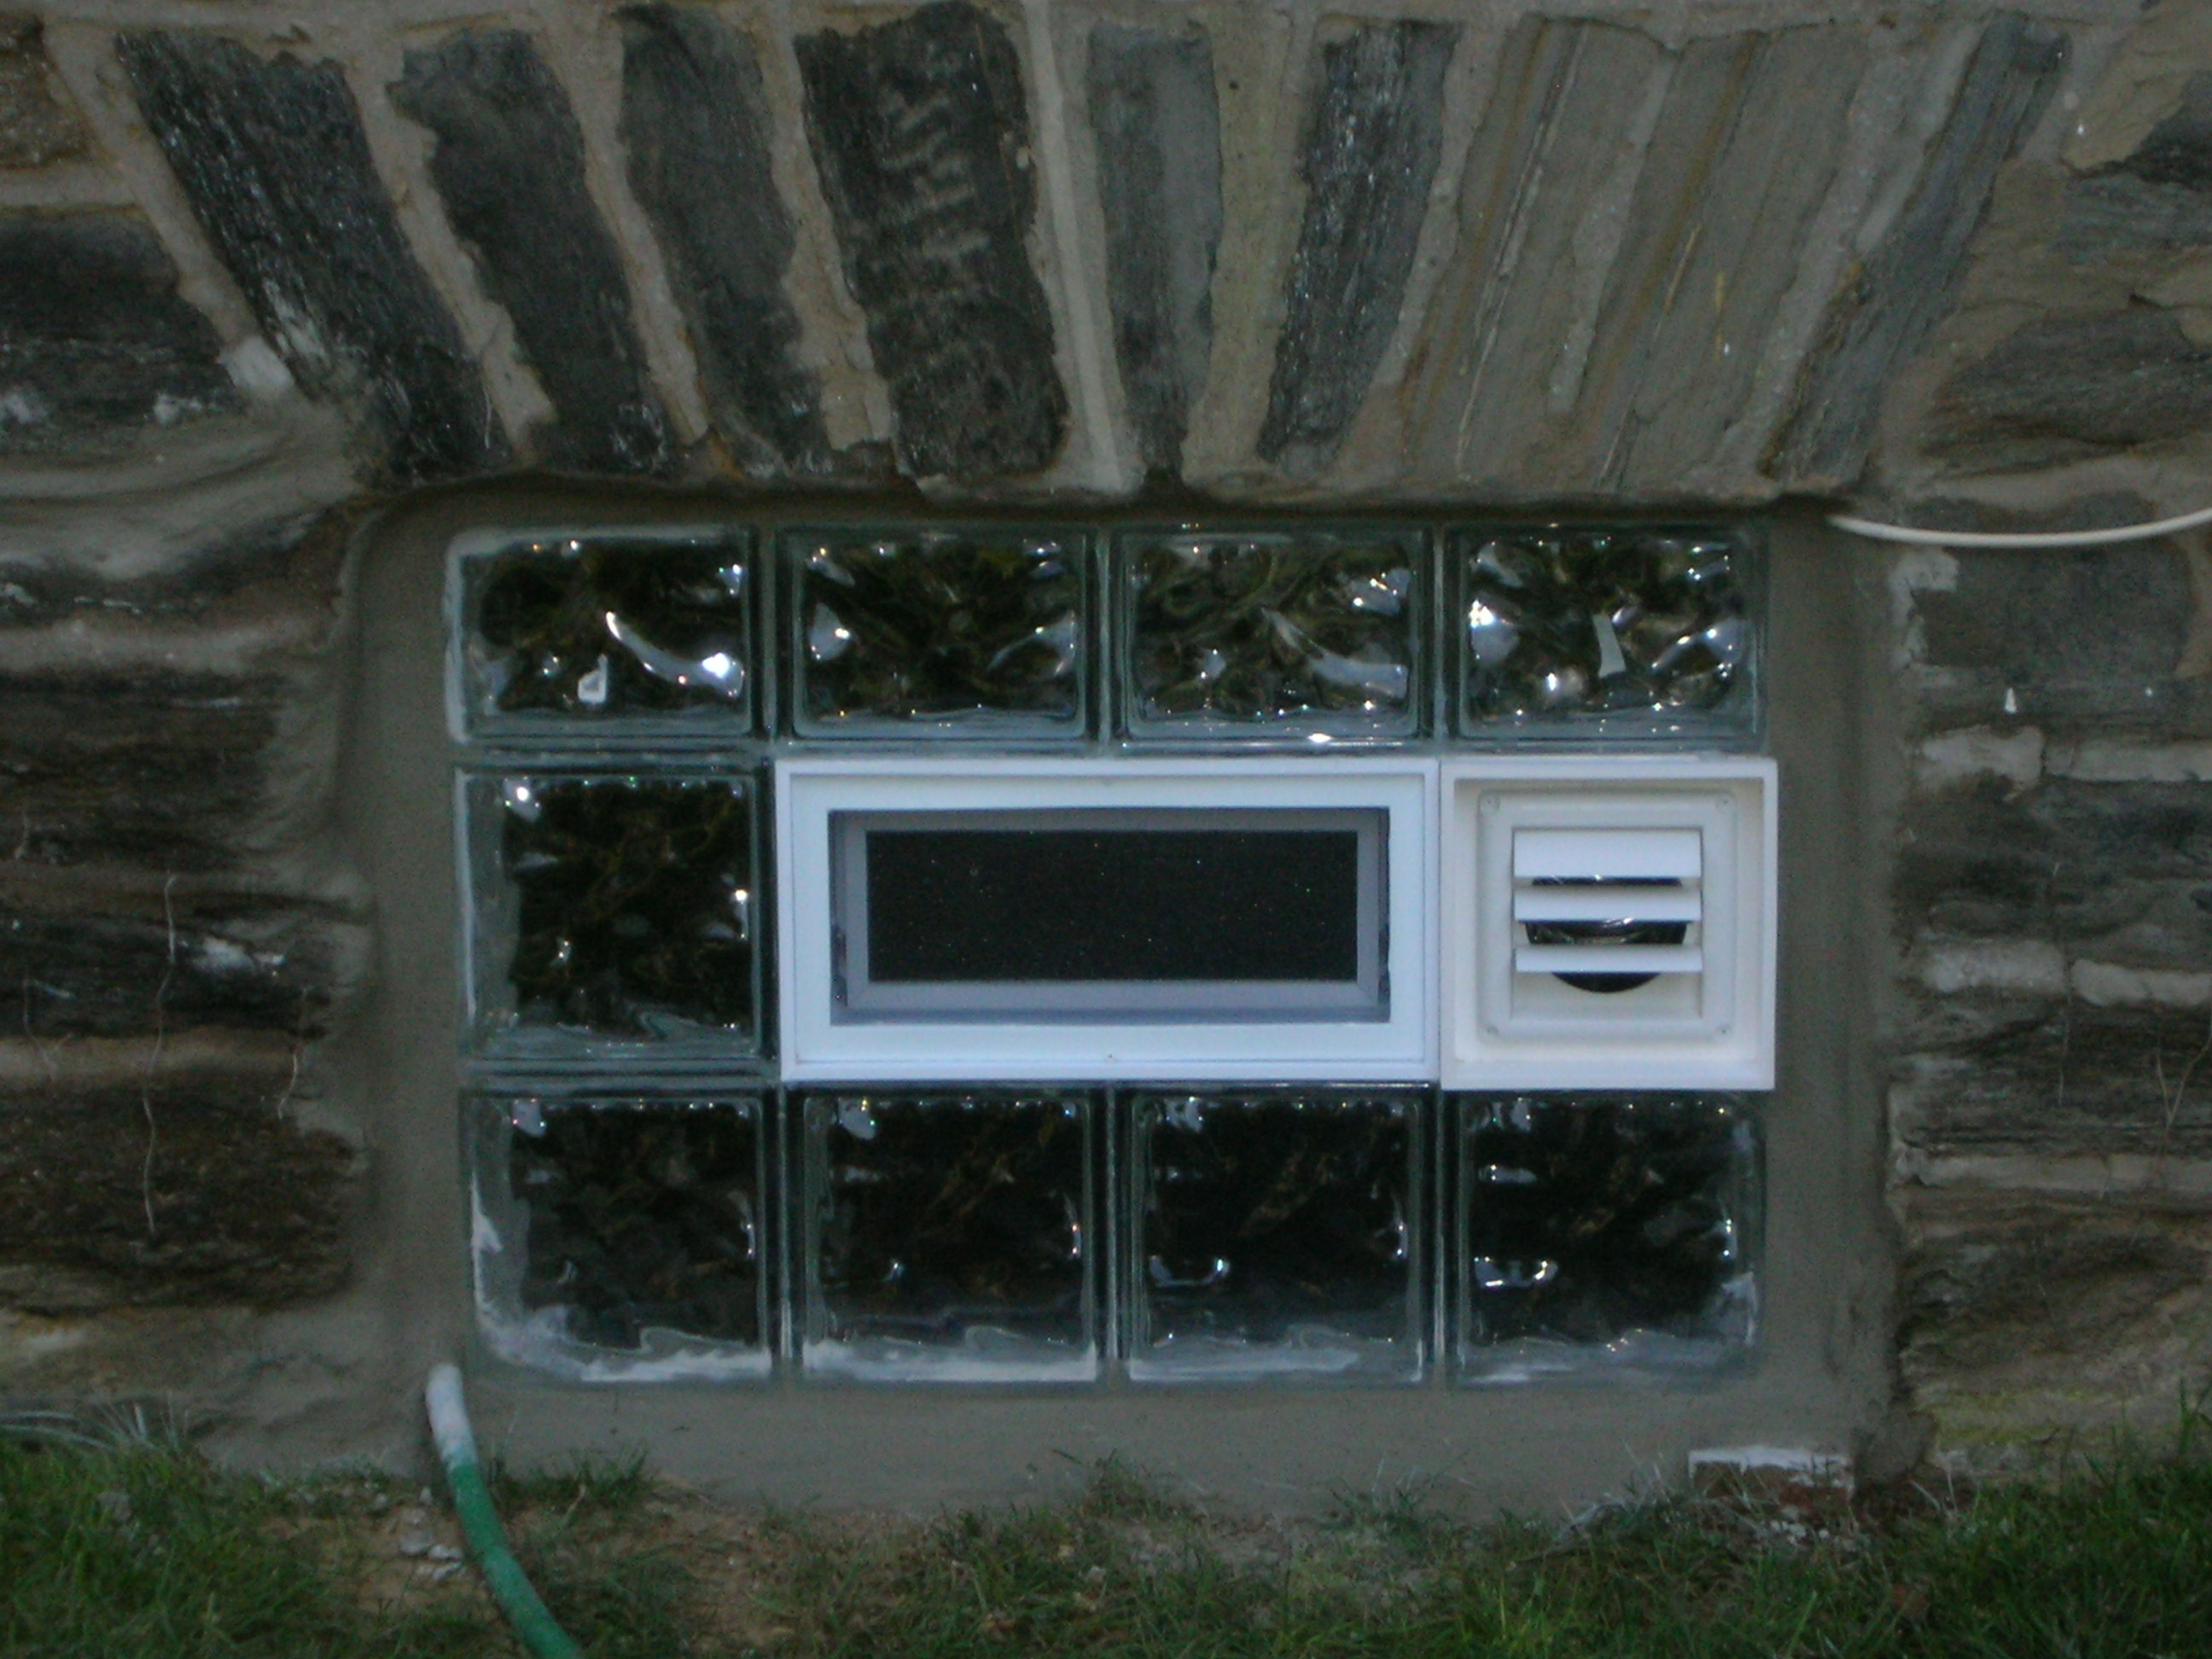 Glass Block Basement Windows With Dryer Vent